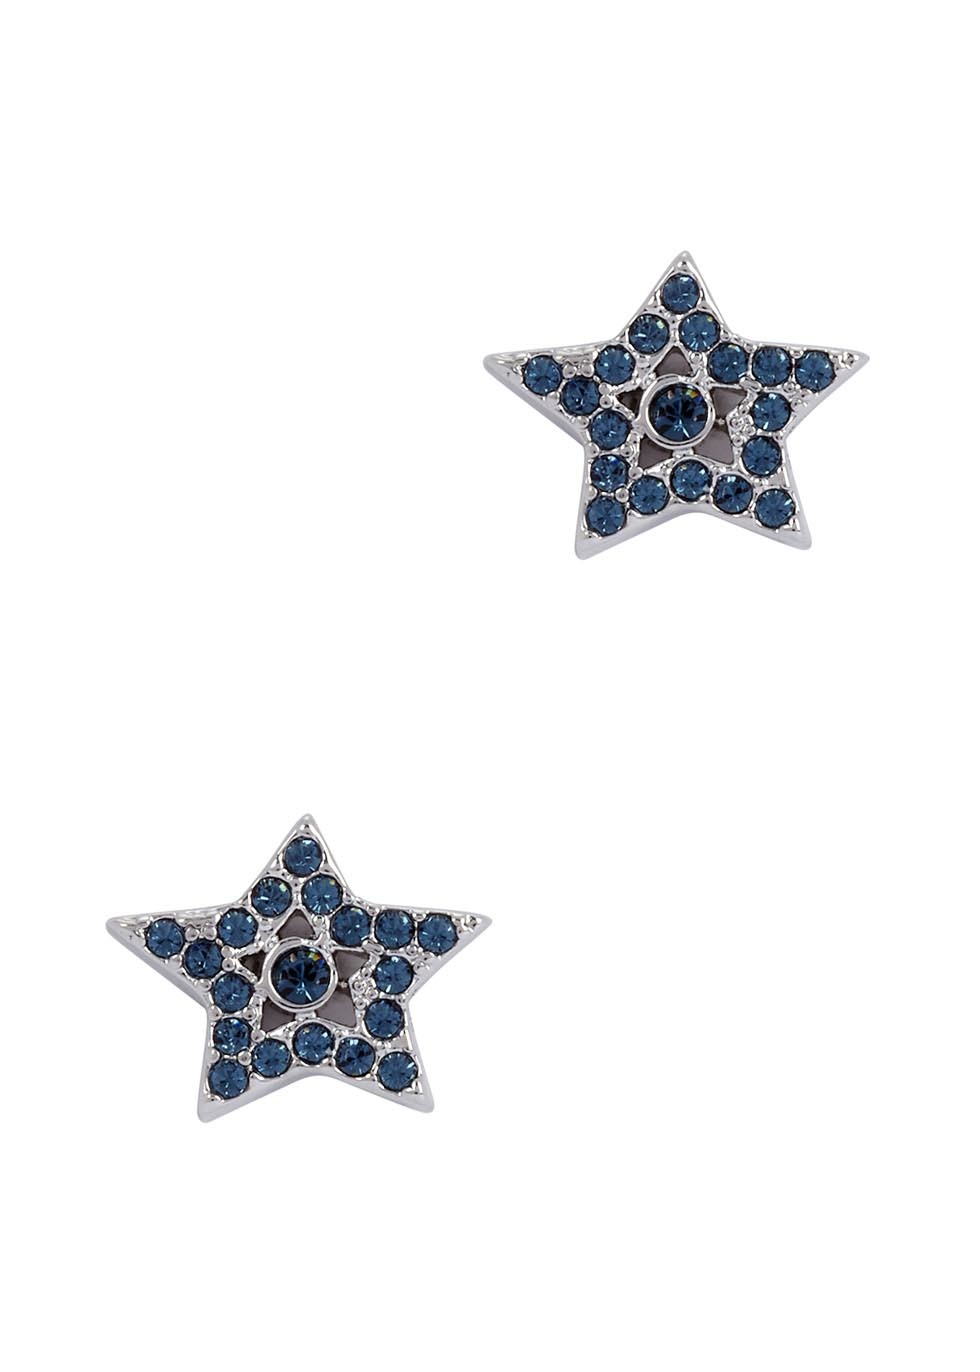 Silver Tone Star Stud Earrings - predominant colour: navy; occasions: casual, evening, creative work; style: stud; length: short; size: small/fine; material: chain/metal; fastening: pierced; finish: plain; embellishment: jewels/stone; season: a/w 2016; wardrobe: highlight